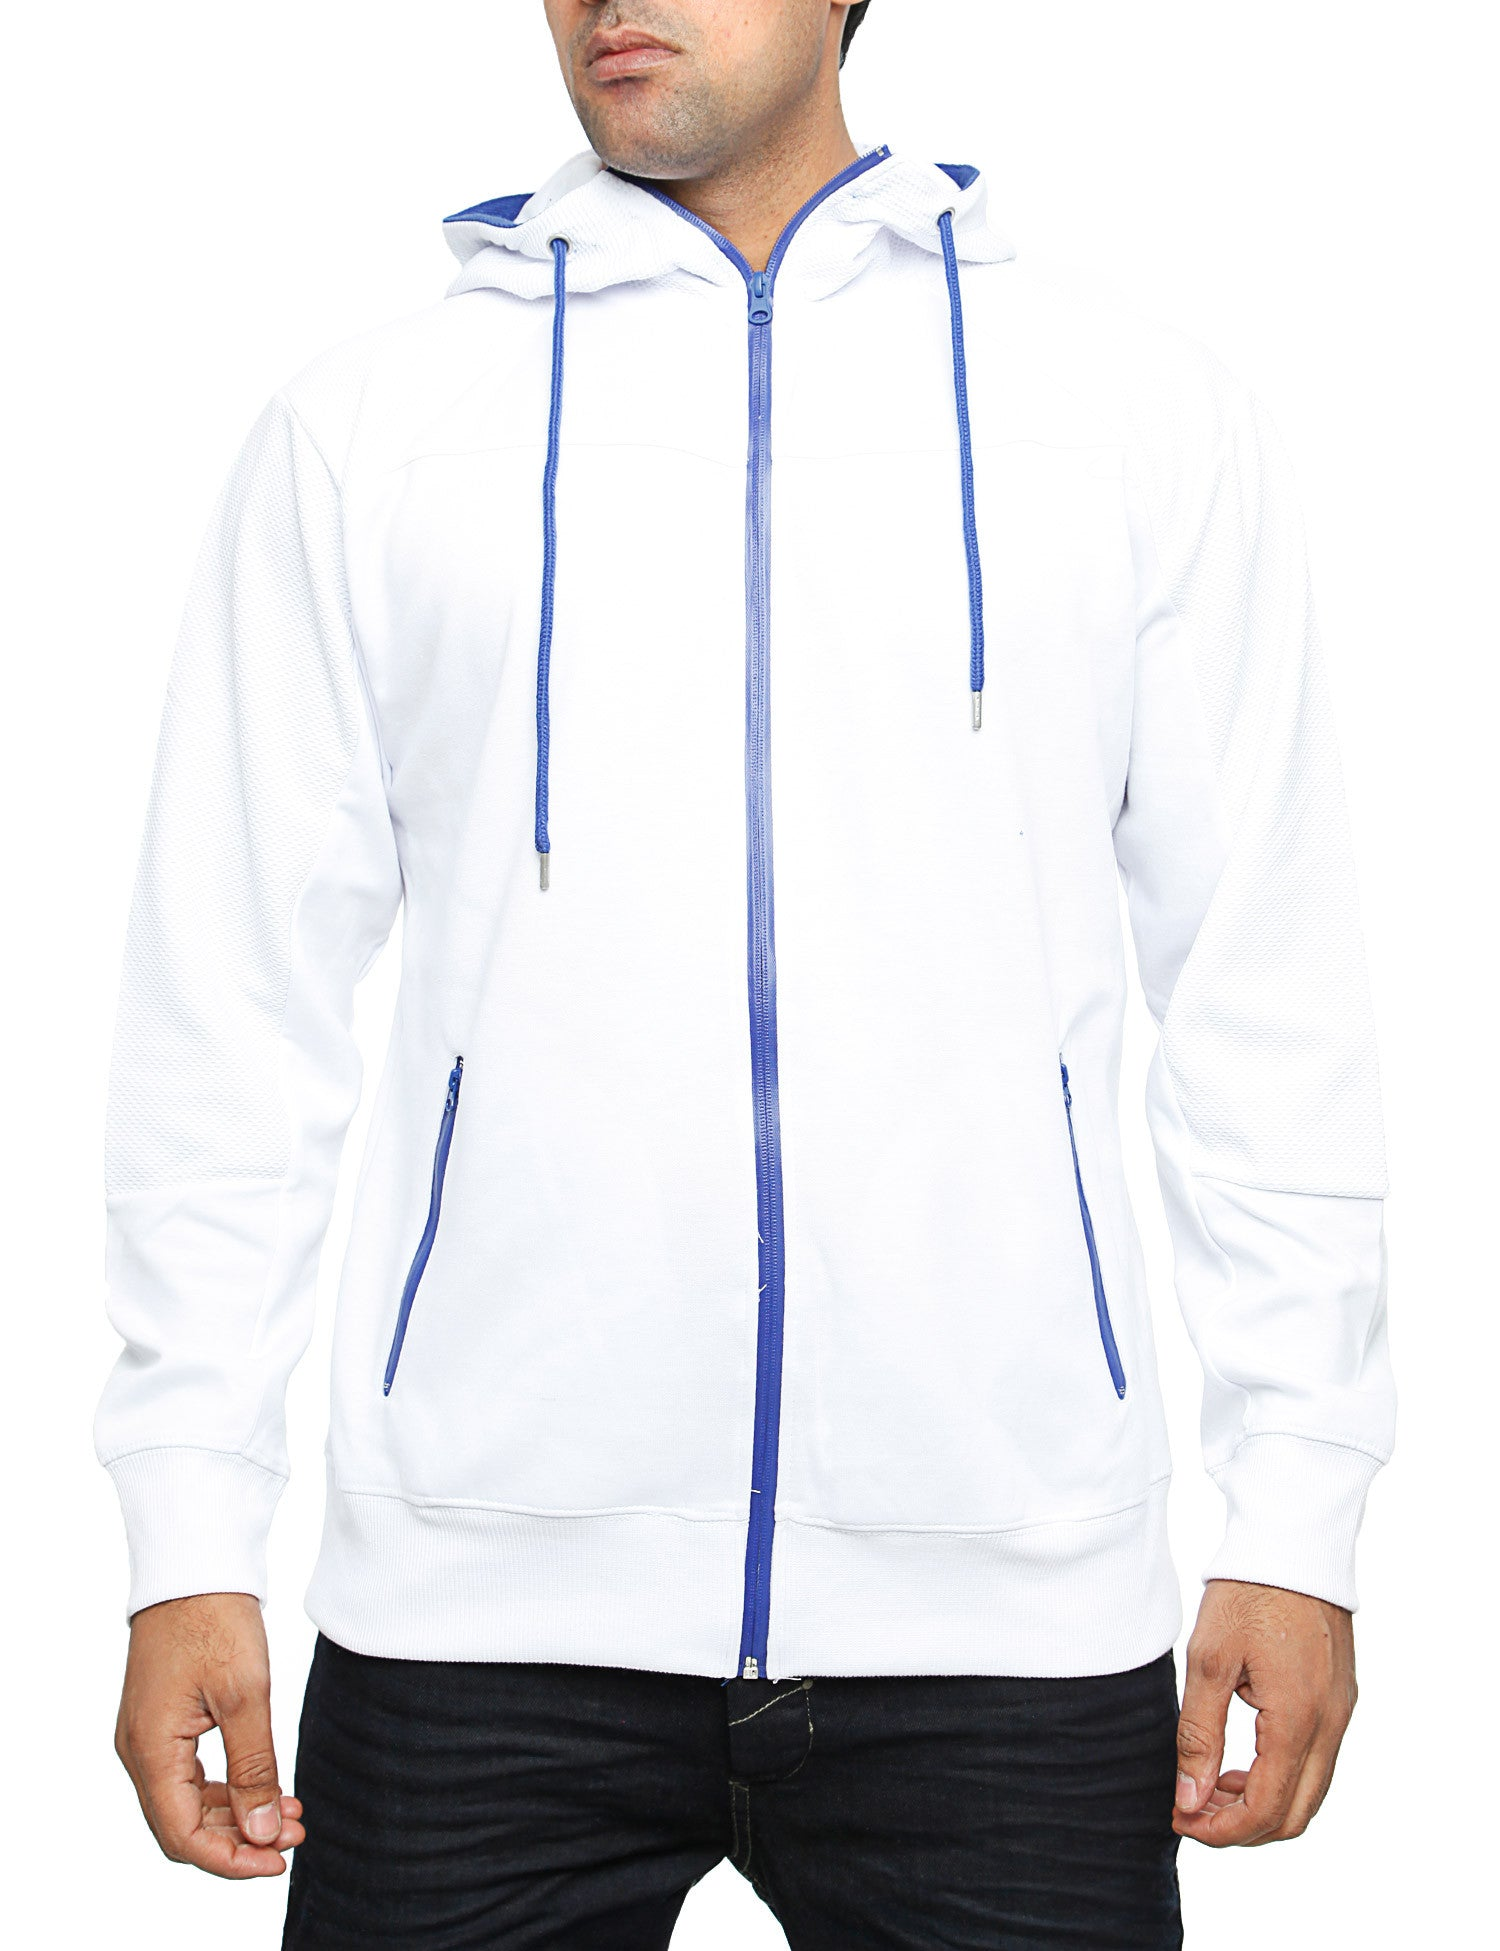 Royal Blue Jersey Mixed Zip Hoody 24018H White